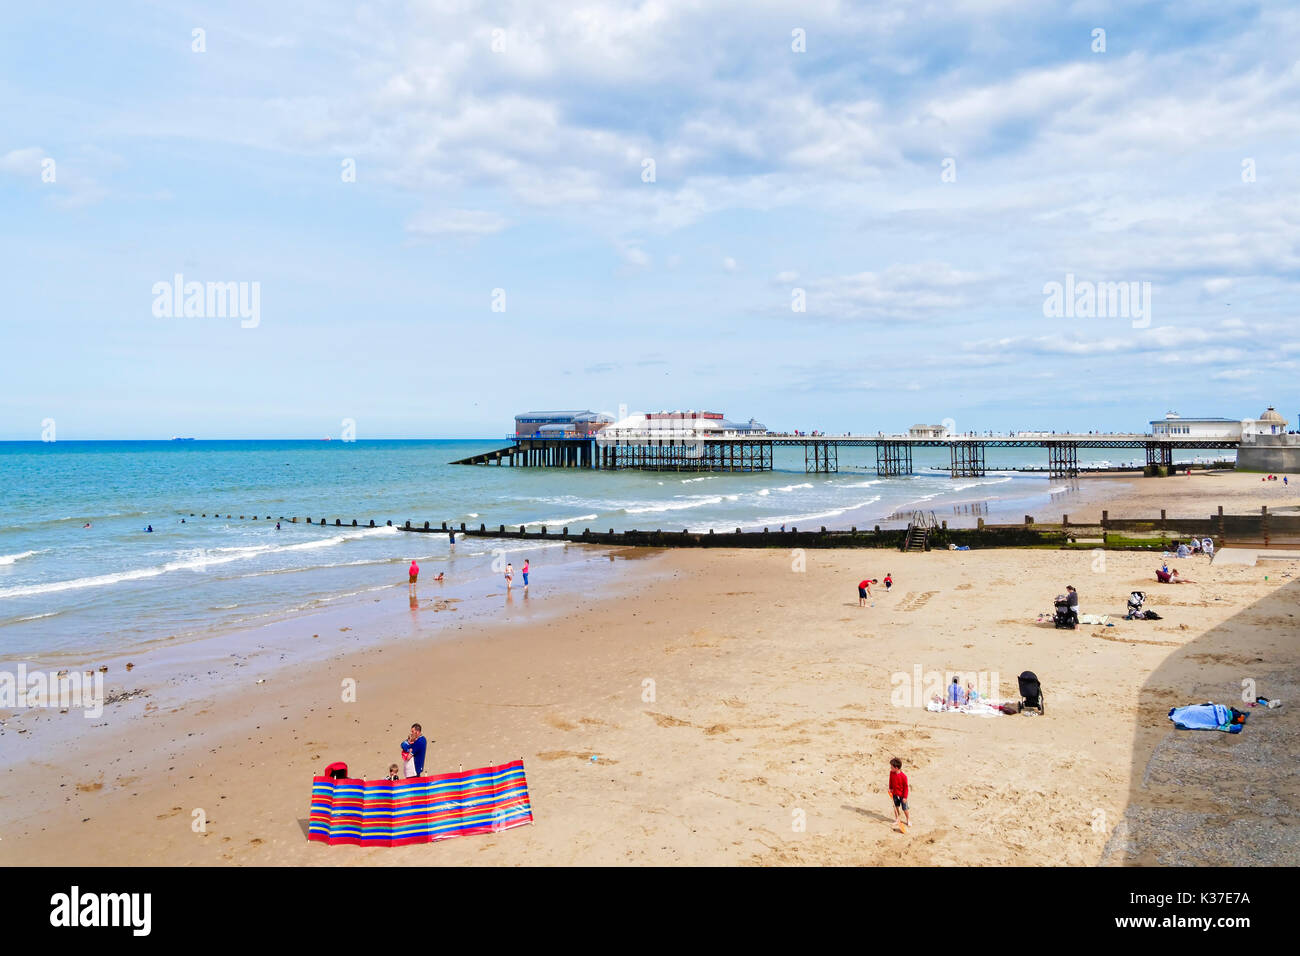 On a late summer afternoon people sit and play near the pier on Cromer beach - Stock Image